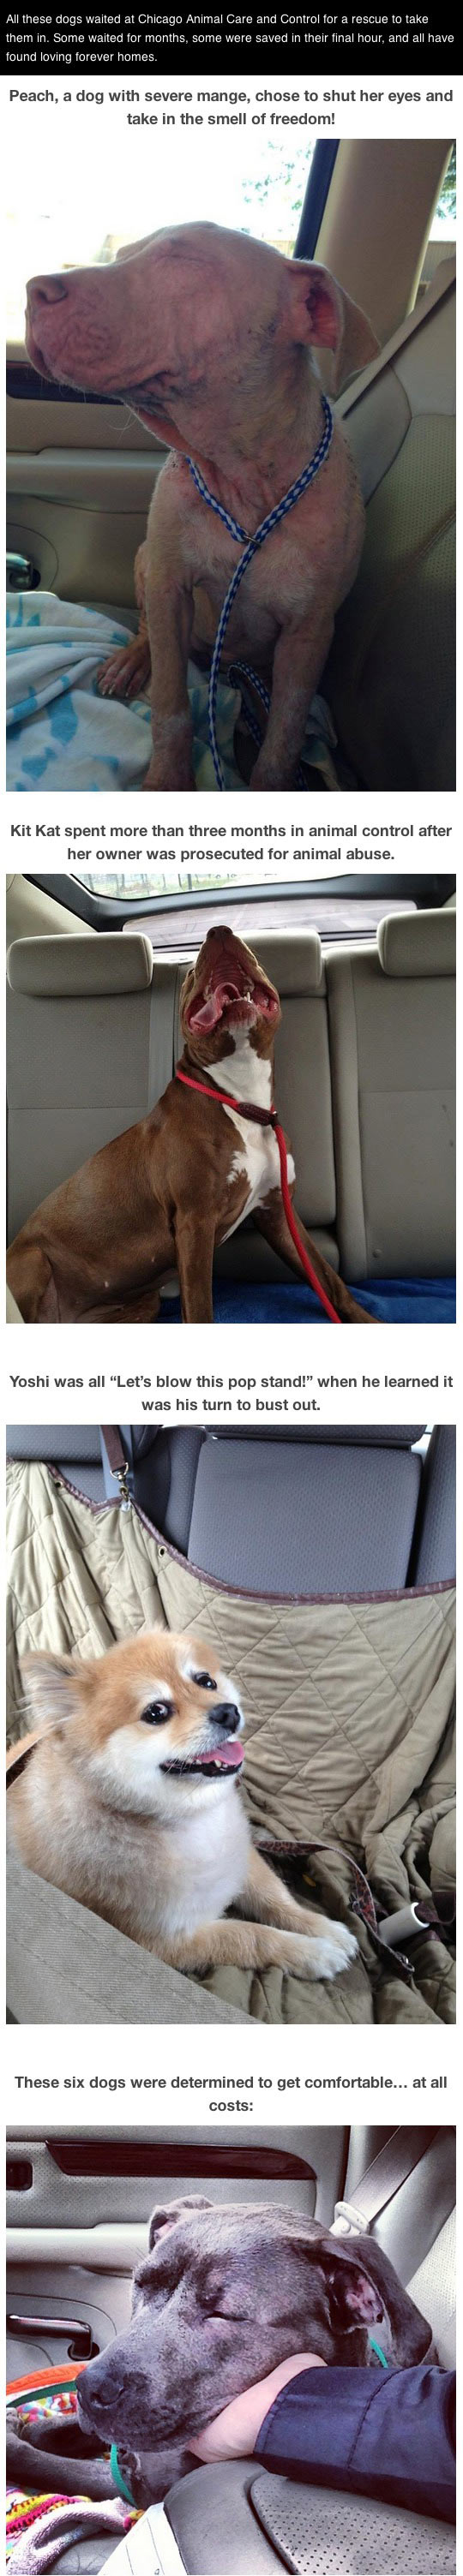 Photos of dogs taken after leaving the shelter and getting in the car...